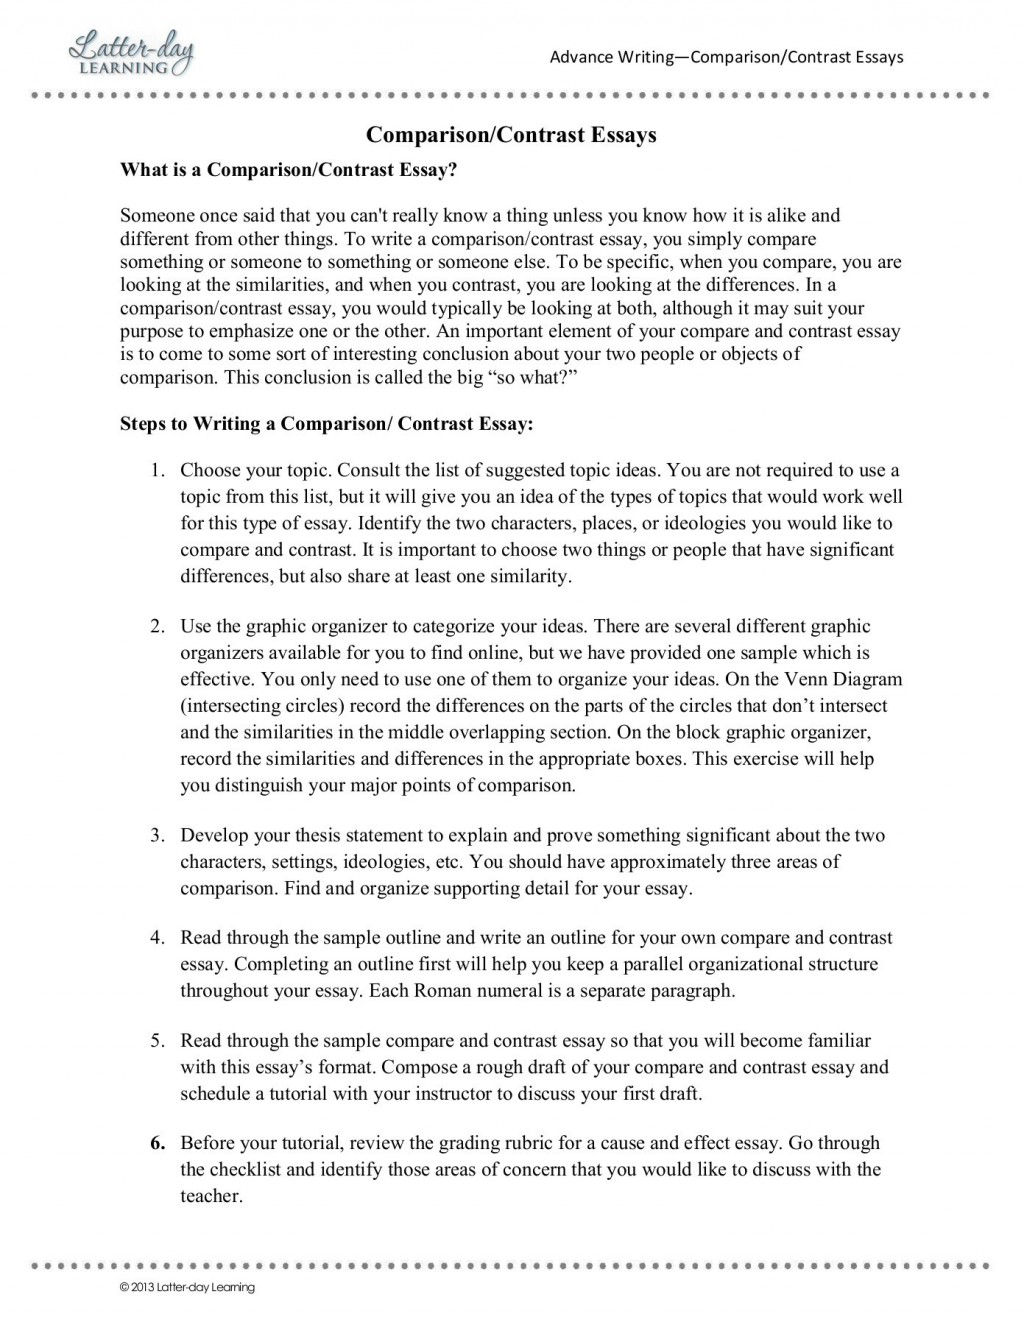 013 Comparison Contrast Essay Example Beautiful Compare Format College Graphic Organizer Pdf Examples Large